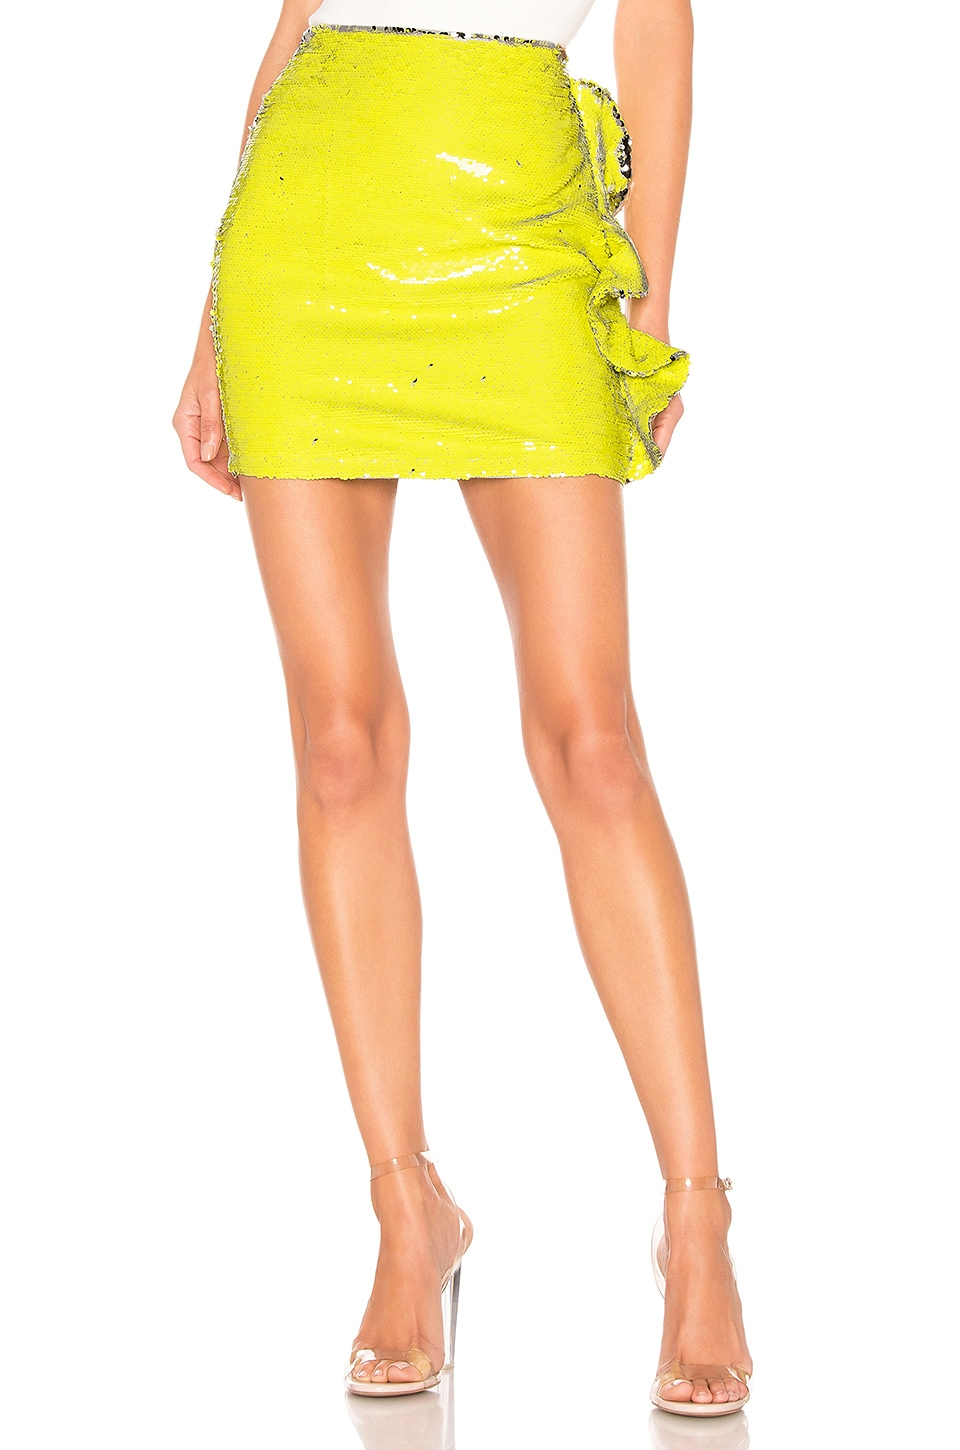 h:ours Suki Mini Skirt in Silver Yellow